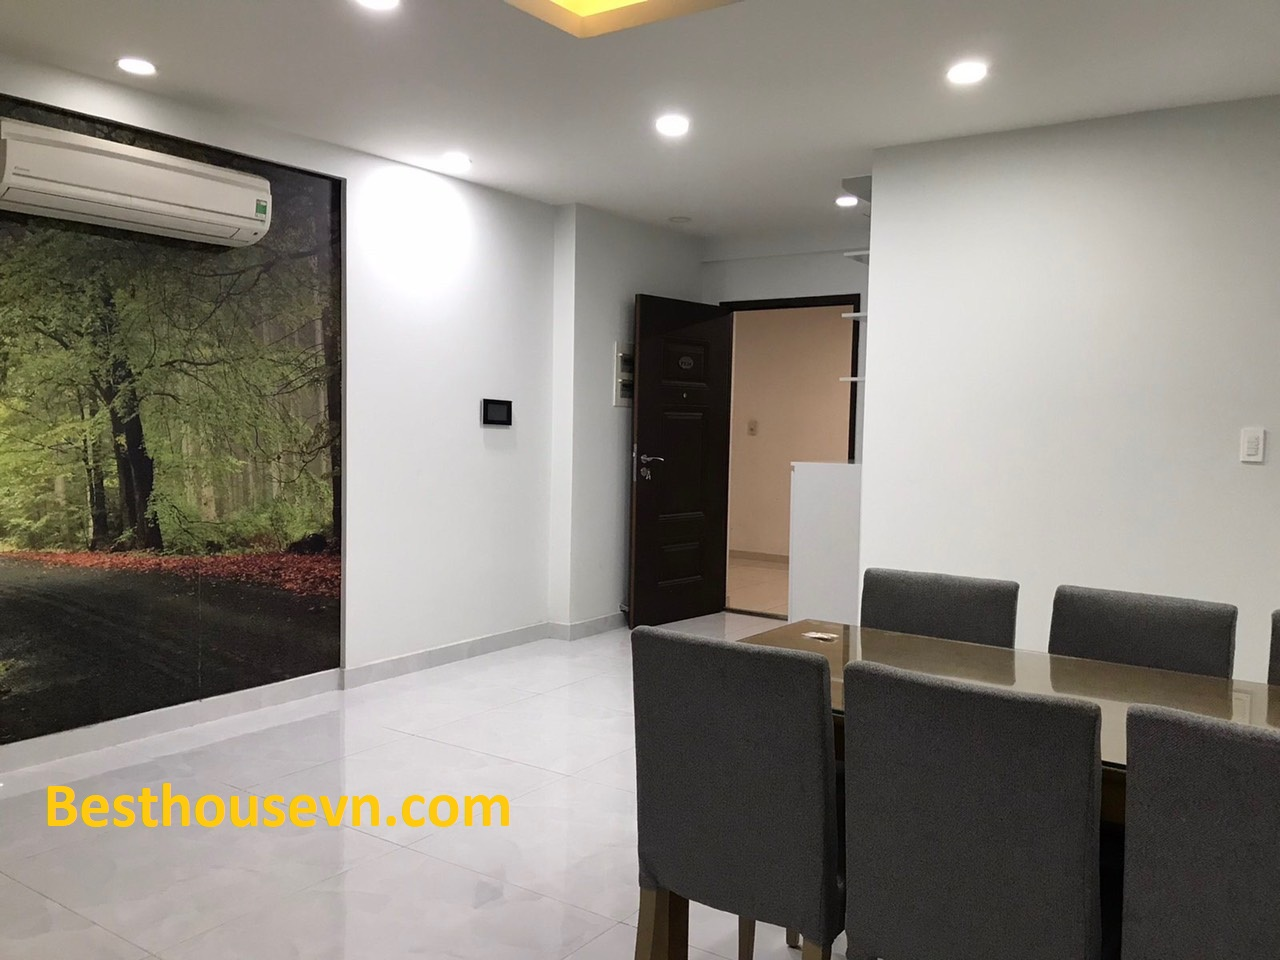 Scenic-valley-apartment-for rent-in-phu-my-hung-sai-gon